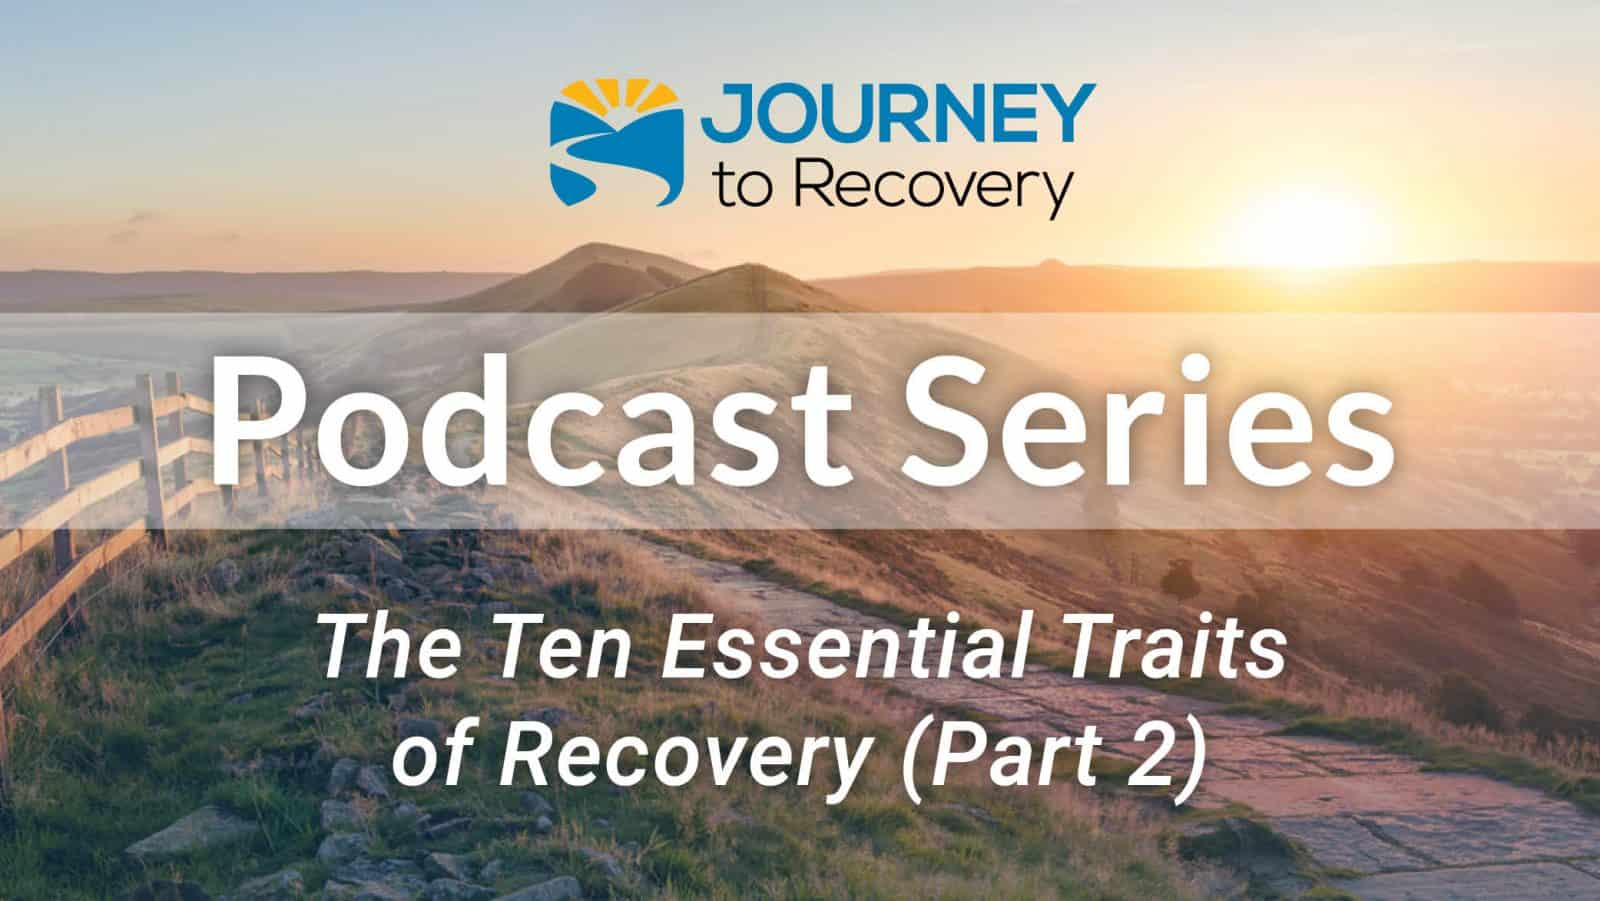 The Ten Essential Traits of Recovery (Part 2)